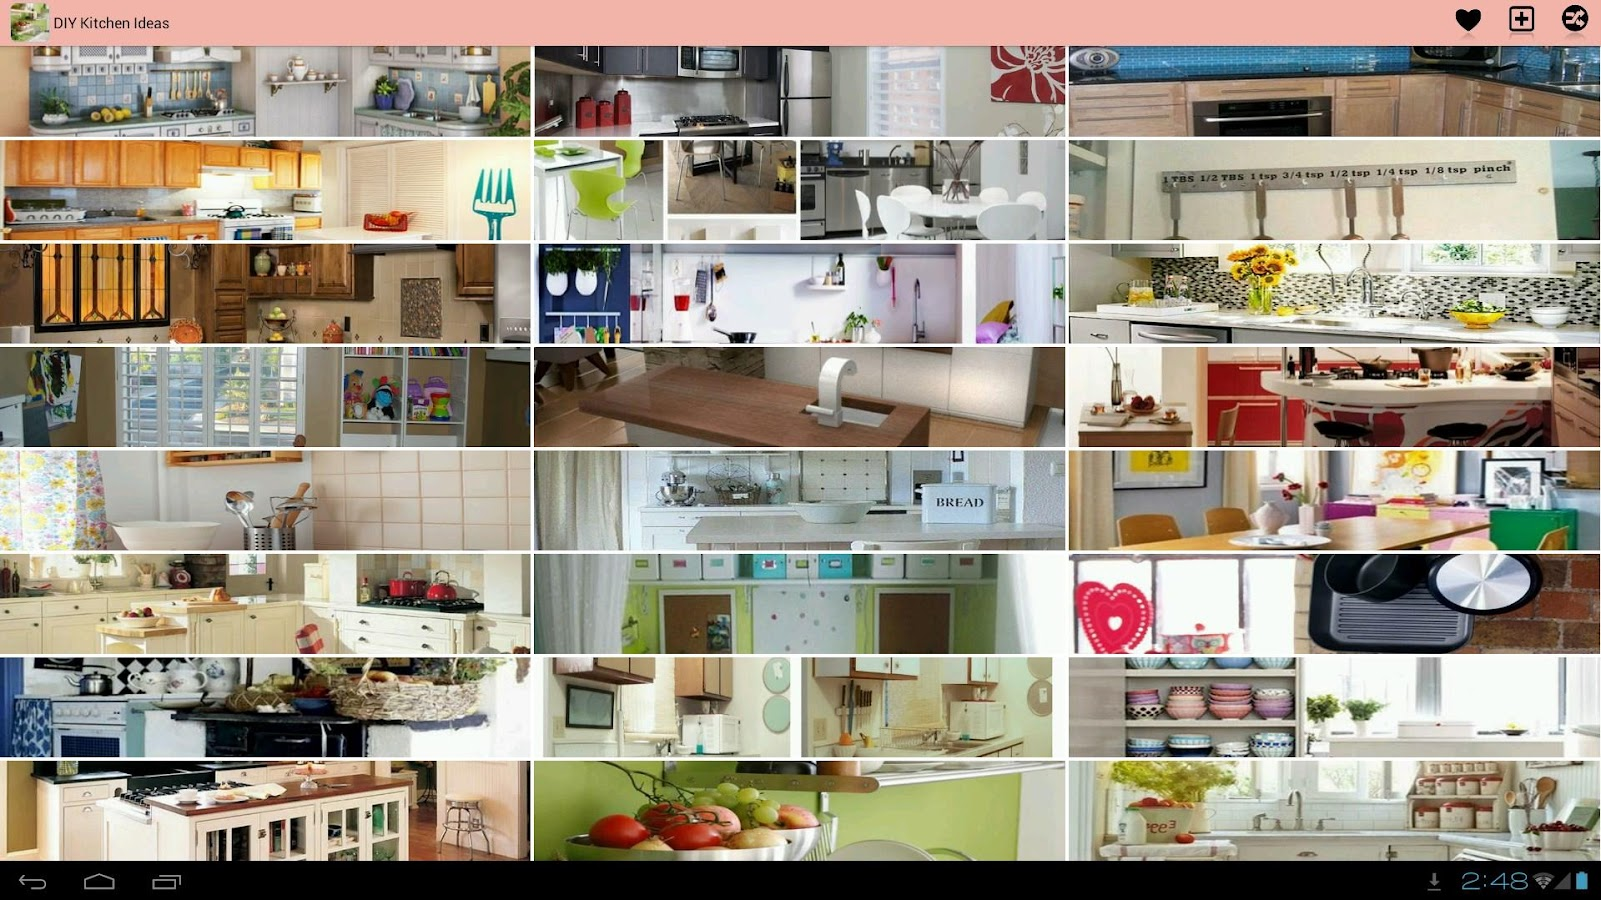 Diy kitchen ideas android apps on google play for Kitchen ideas app